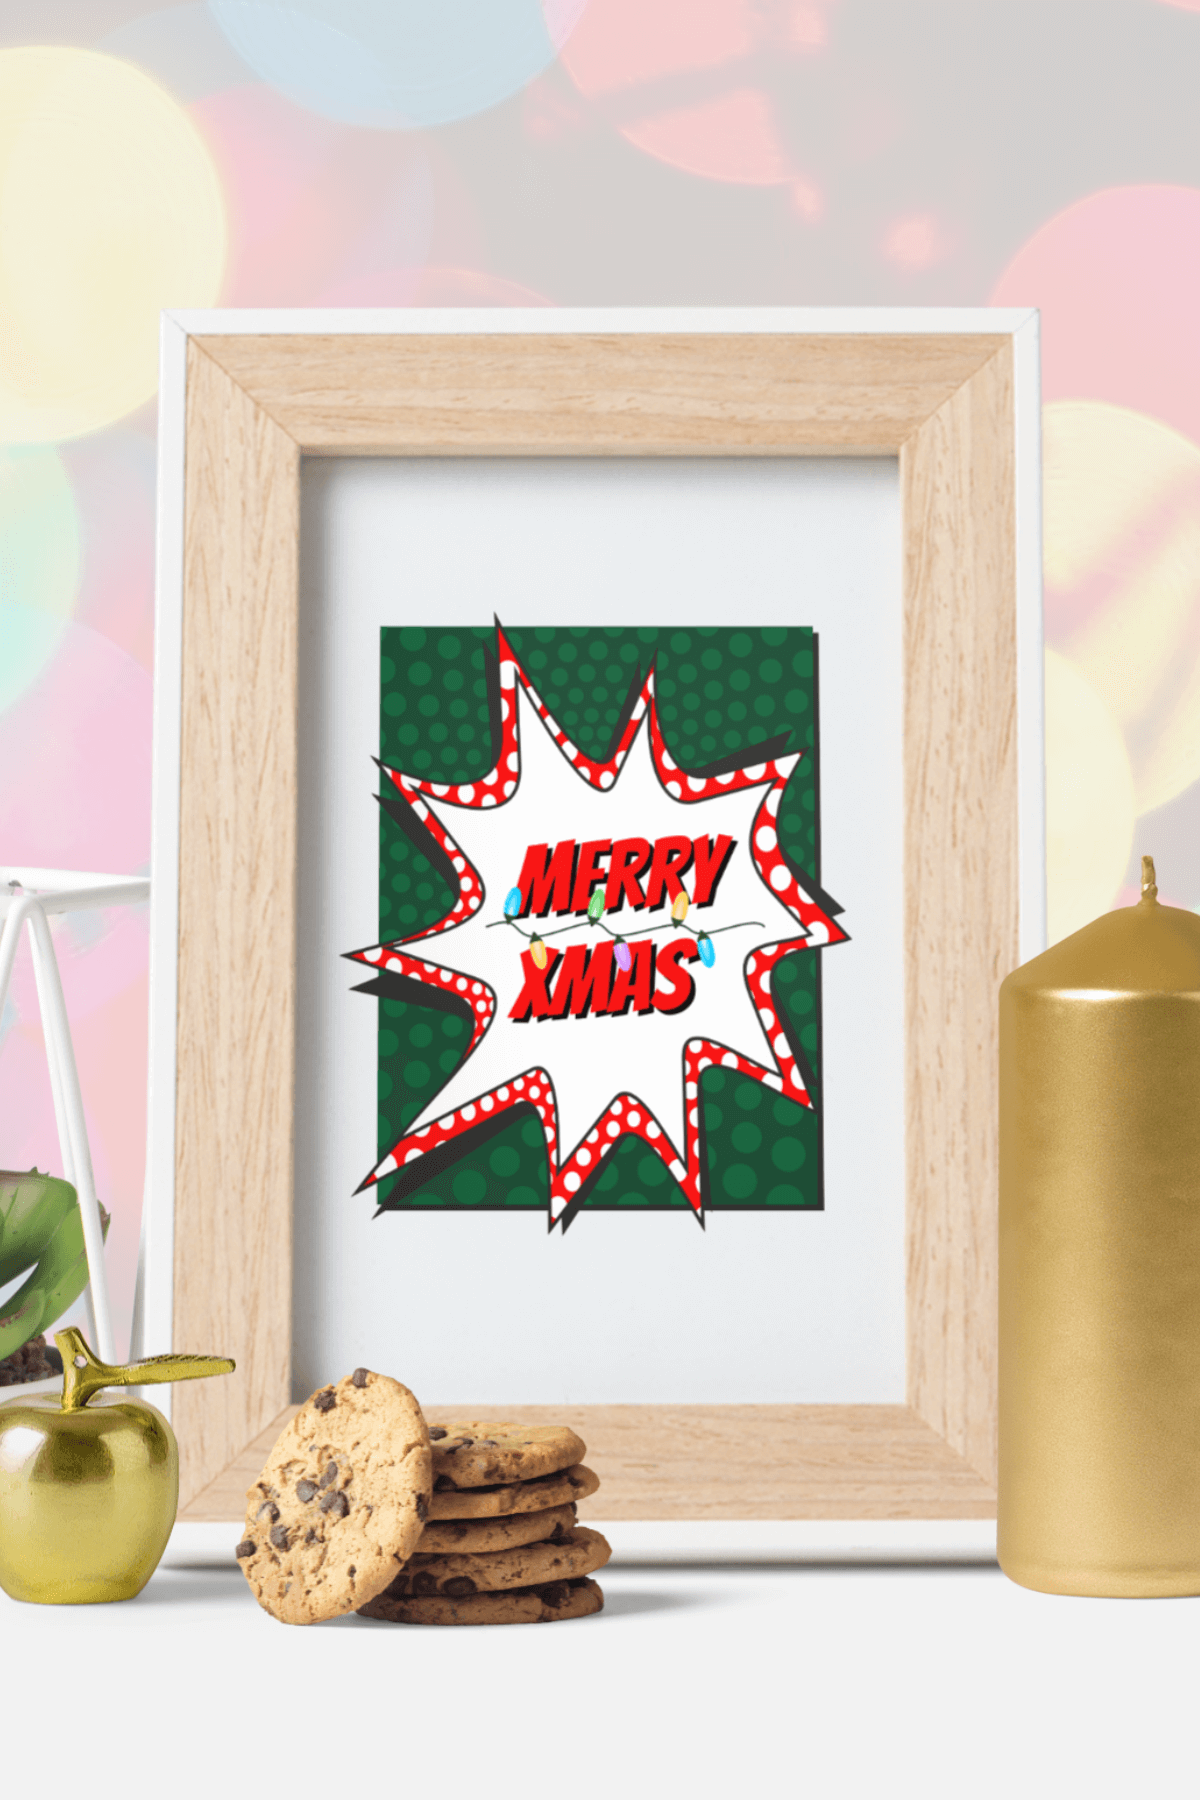 Decorate your wall with the'' Merry Xmas'' poster. This art is also great as a Christmas party sign. Give it to your friends as Christmas gift! Available as greetings cards also. #merrychristmas #merryxmas #Christmasposter #christmasgift #christmaspartysign #christmaswalldecor #christmasprint #christmasgreetings #christmascards